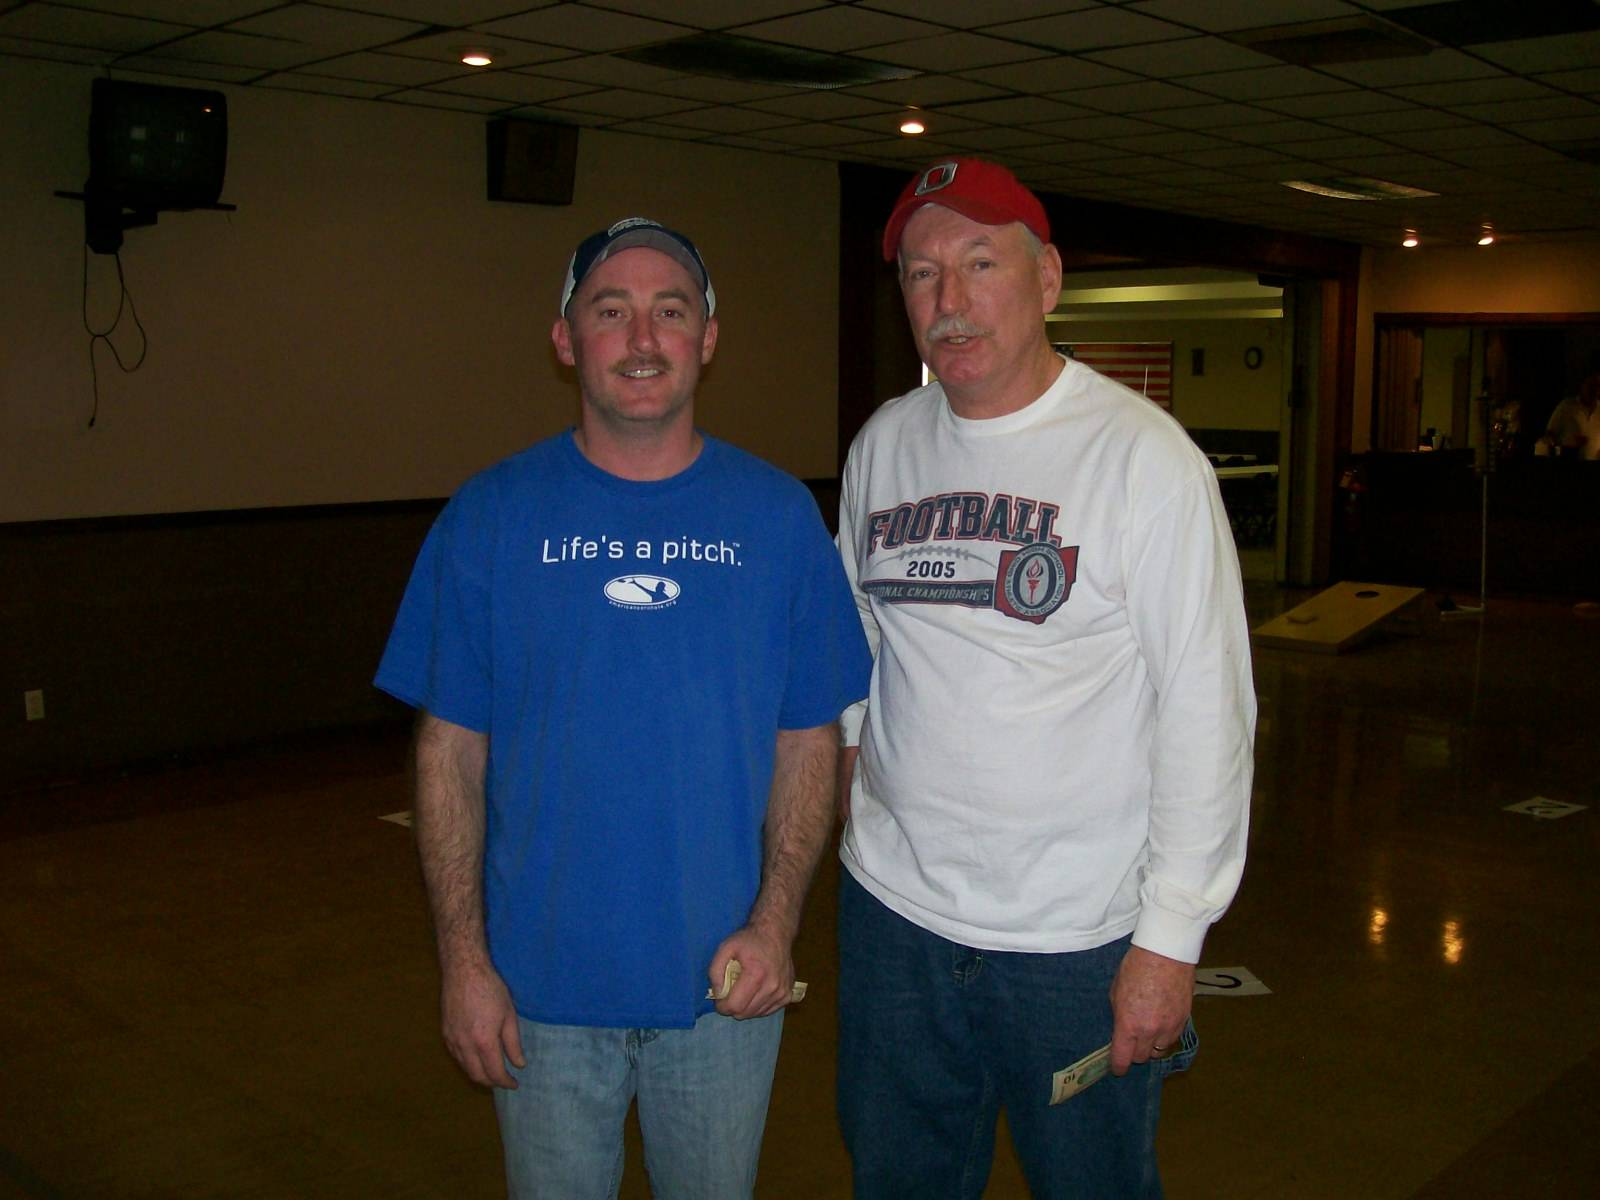 1st place doubles - Mark Allen and Tom Bobo (Jan. 15, 2011)